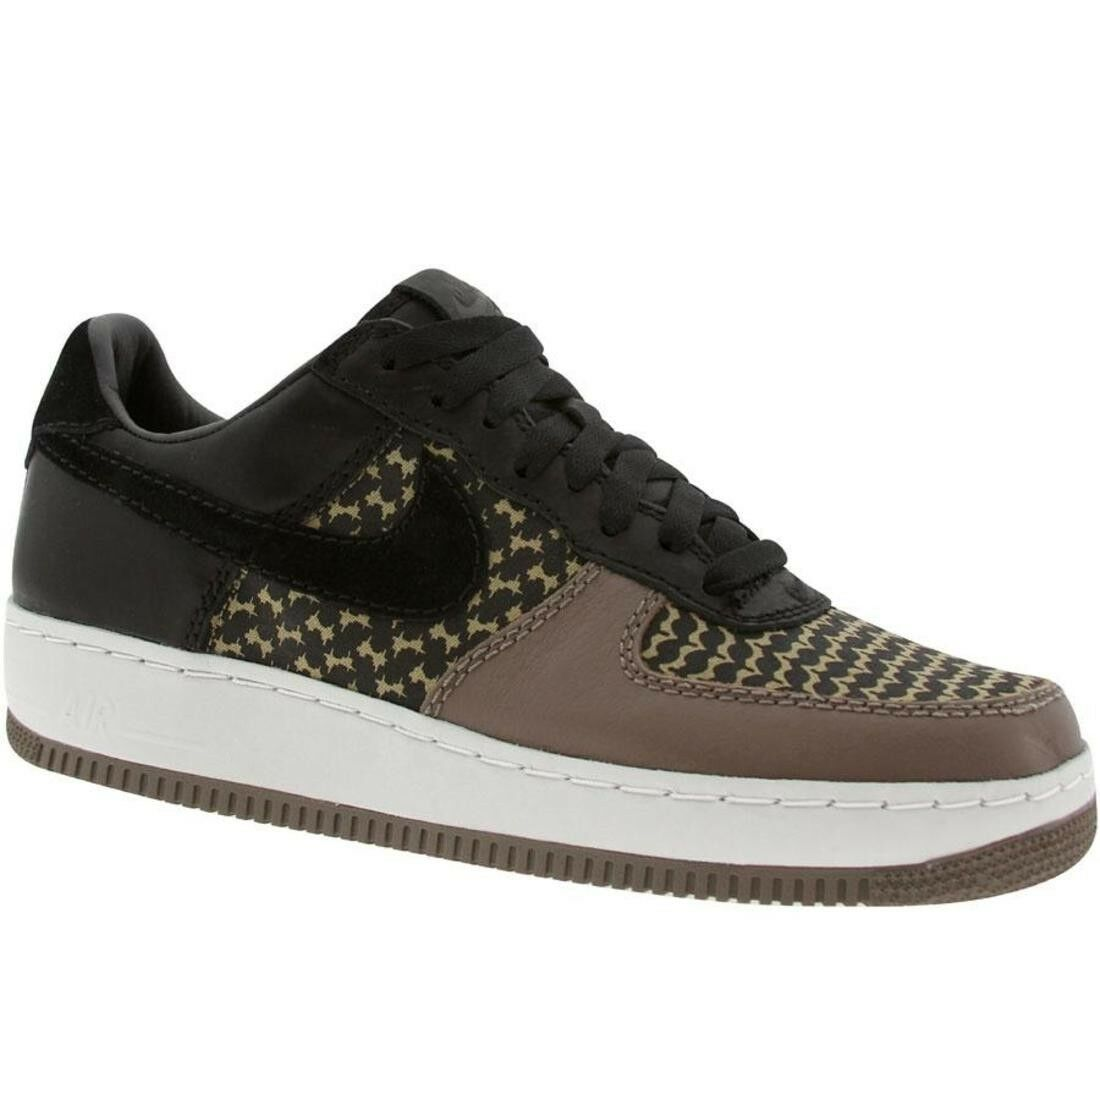 313213-032 Nike Air Force 1 Low IO Insideout Premium Undefeated Edition Nero Gr